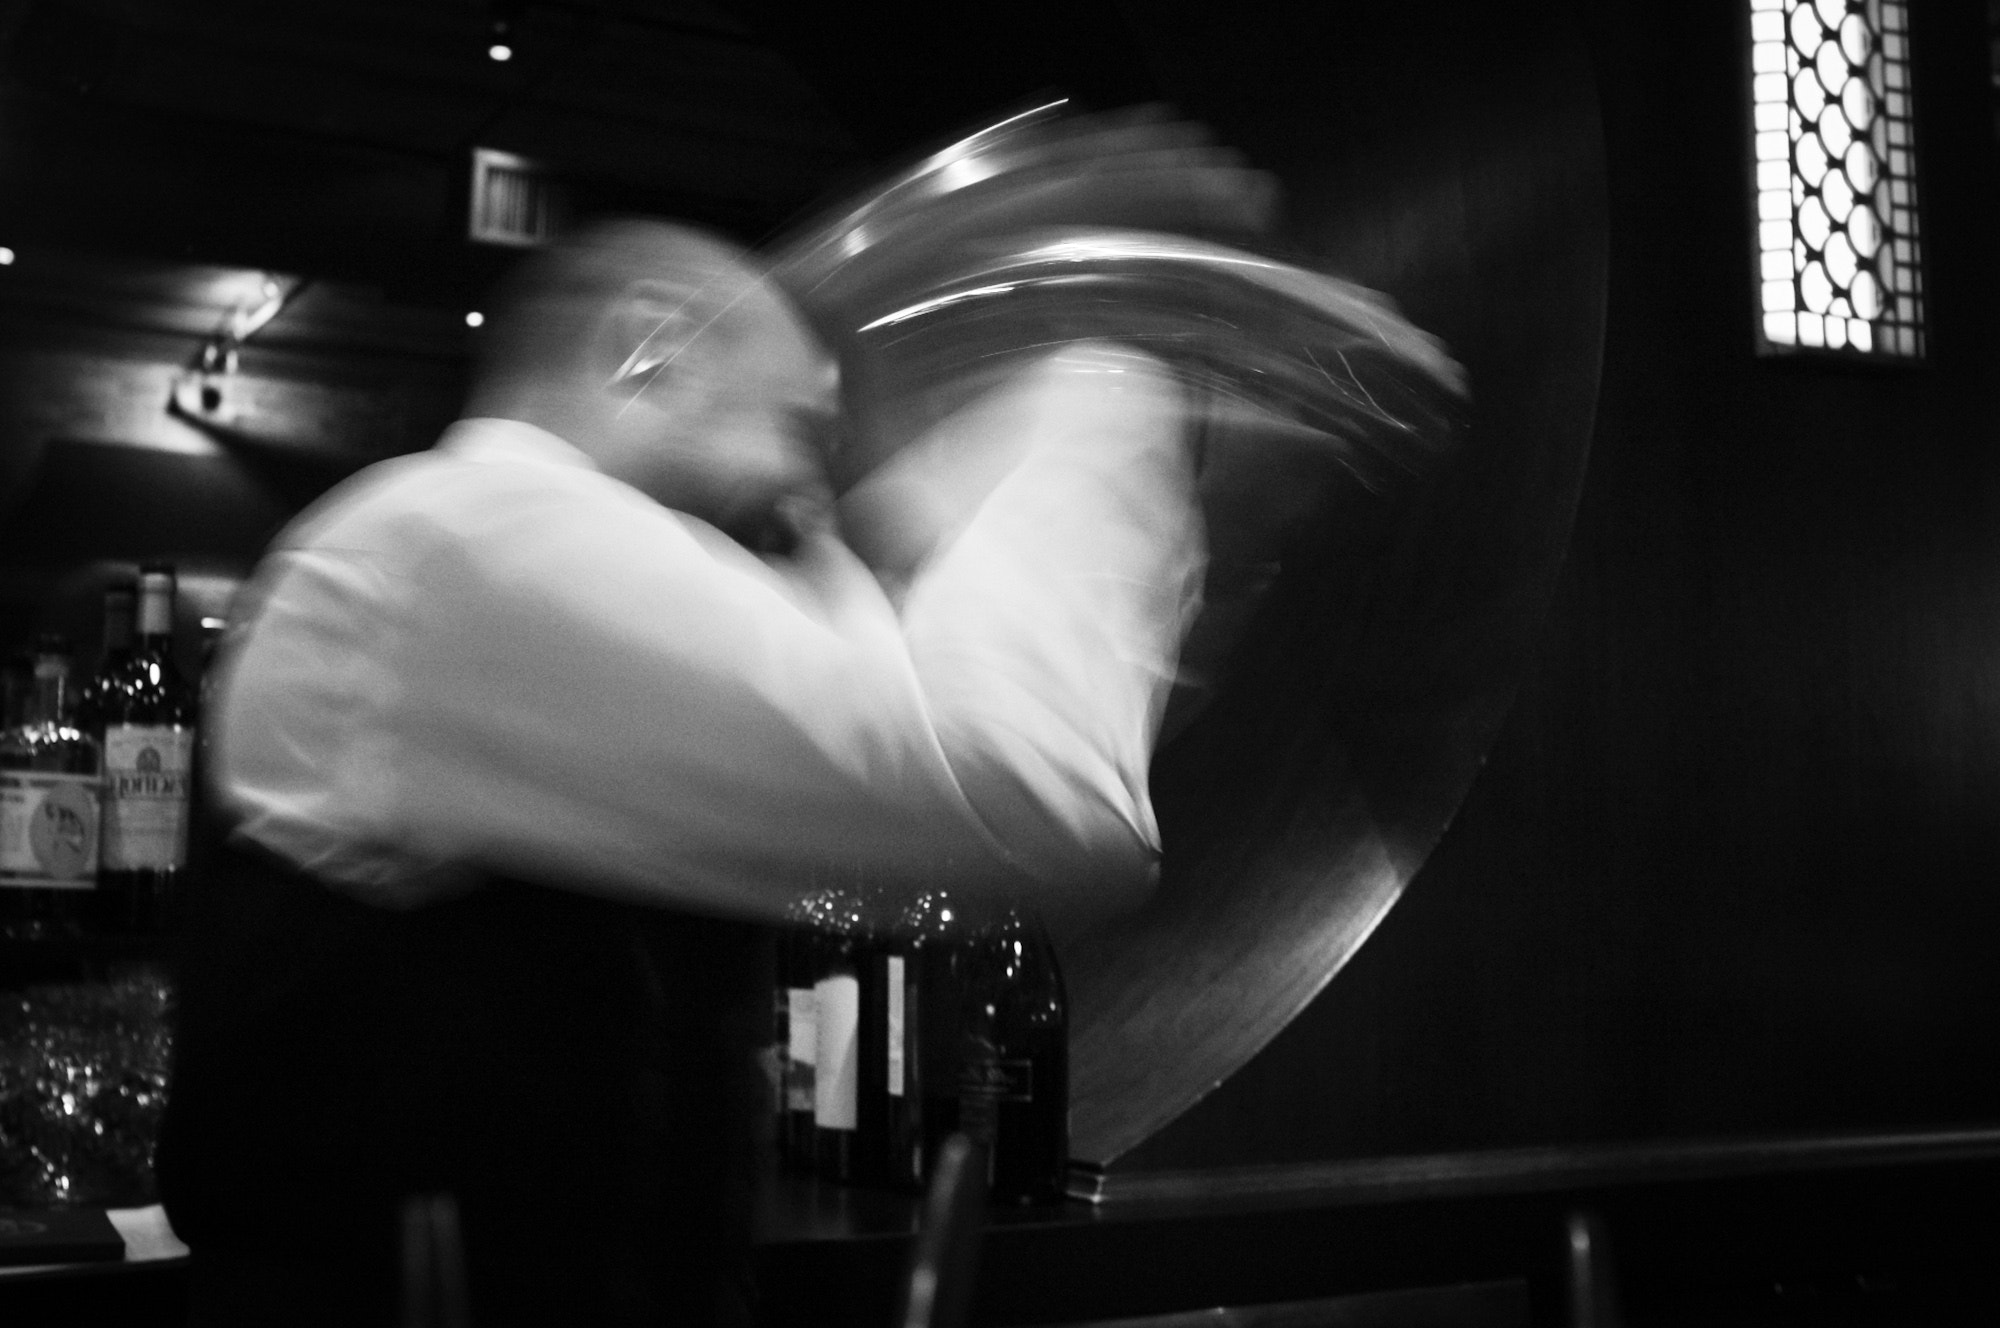 Photograph Bartending Furiously by Mark Prince on 500px